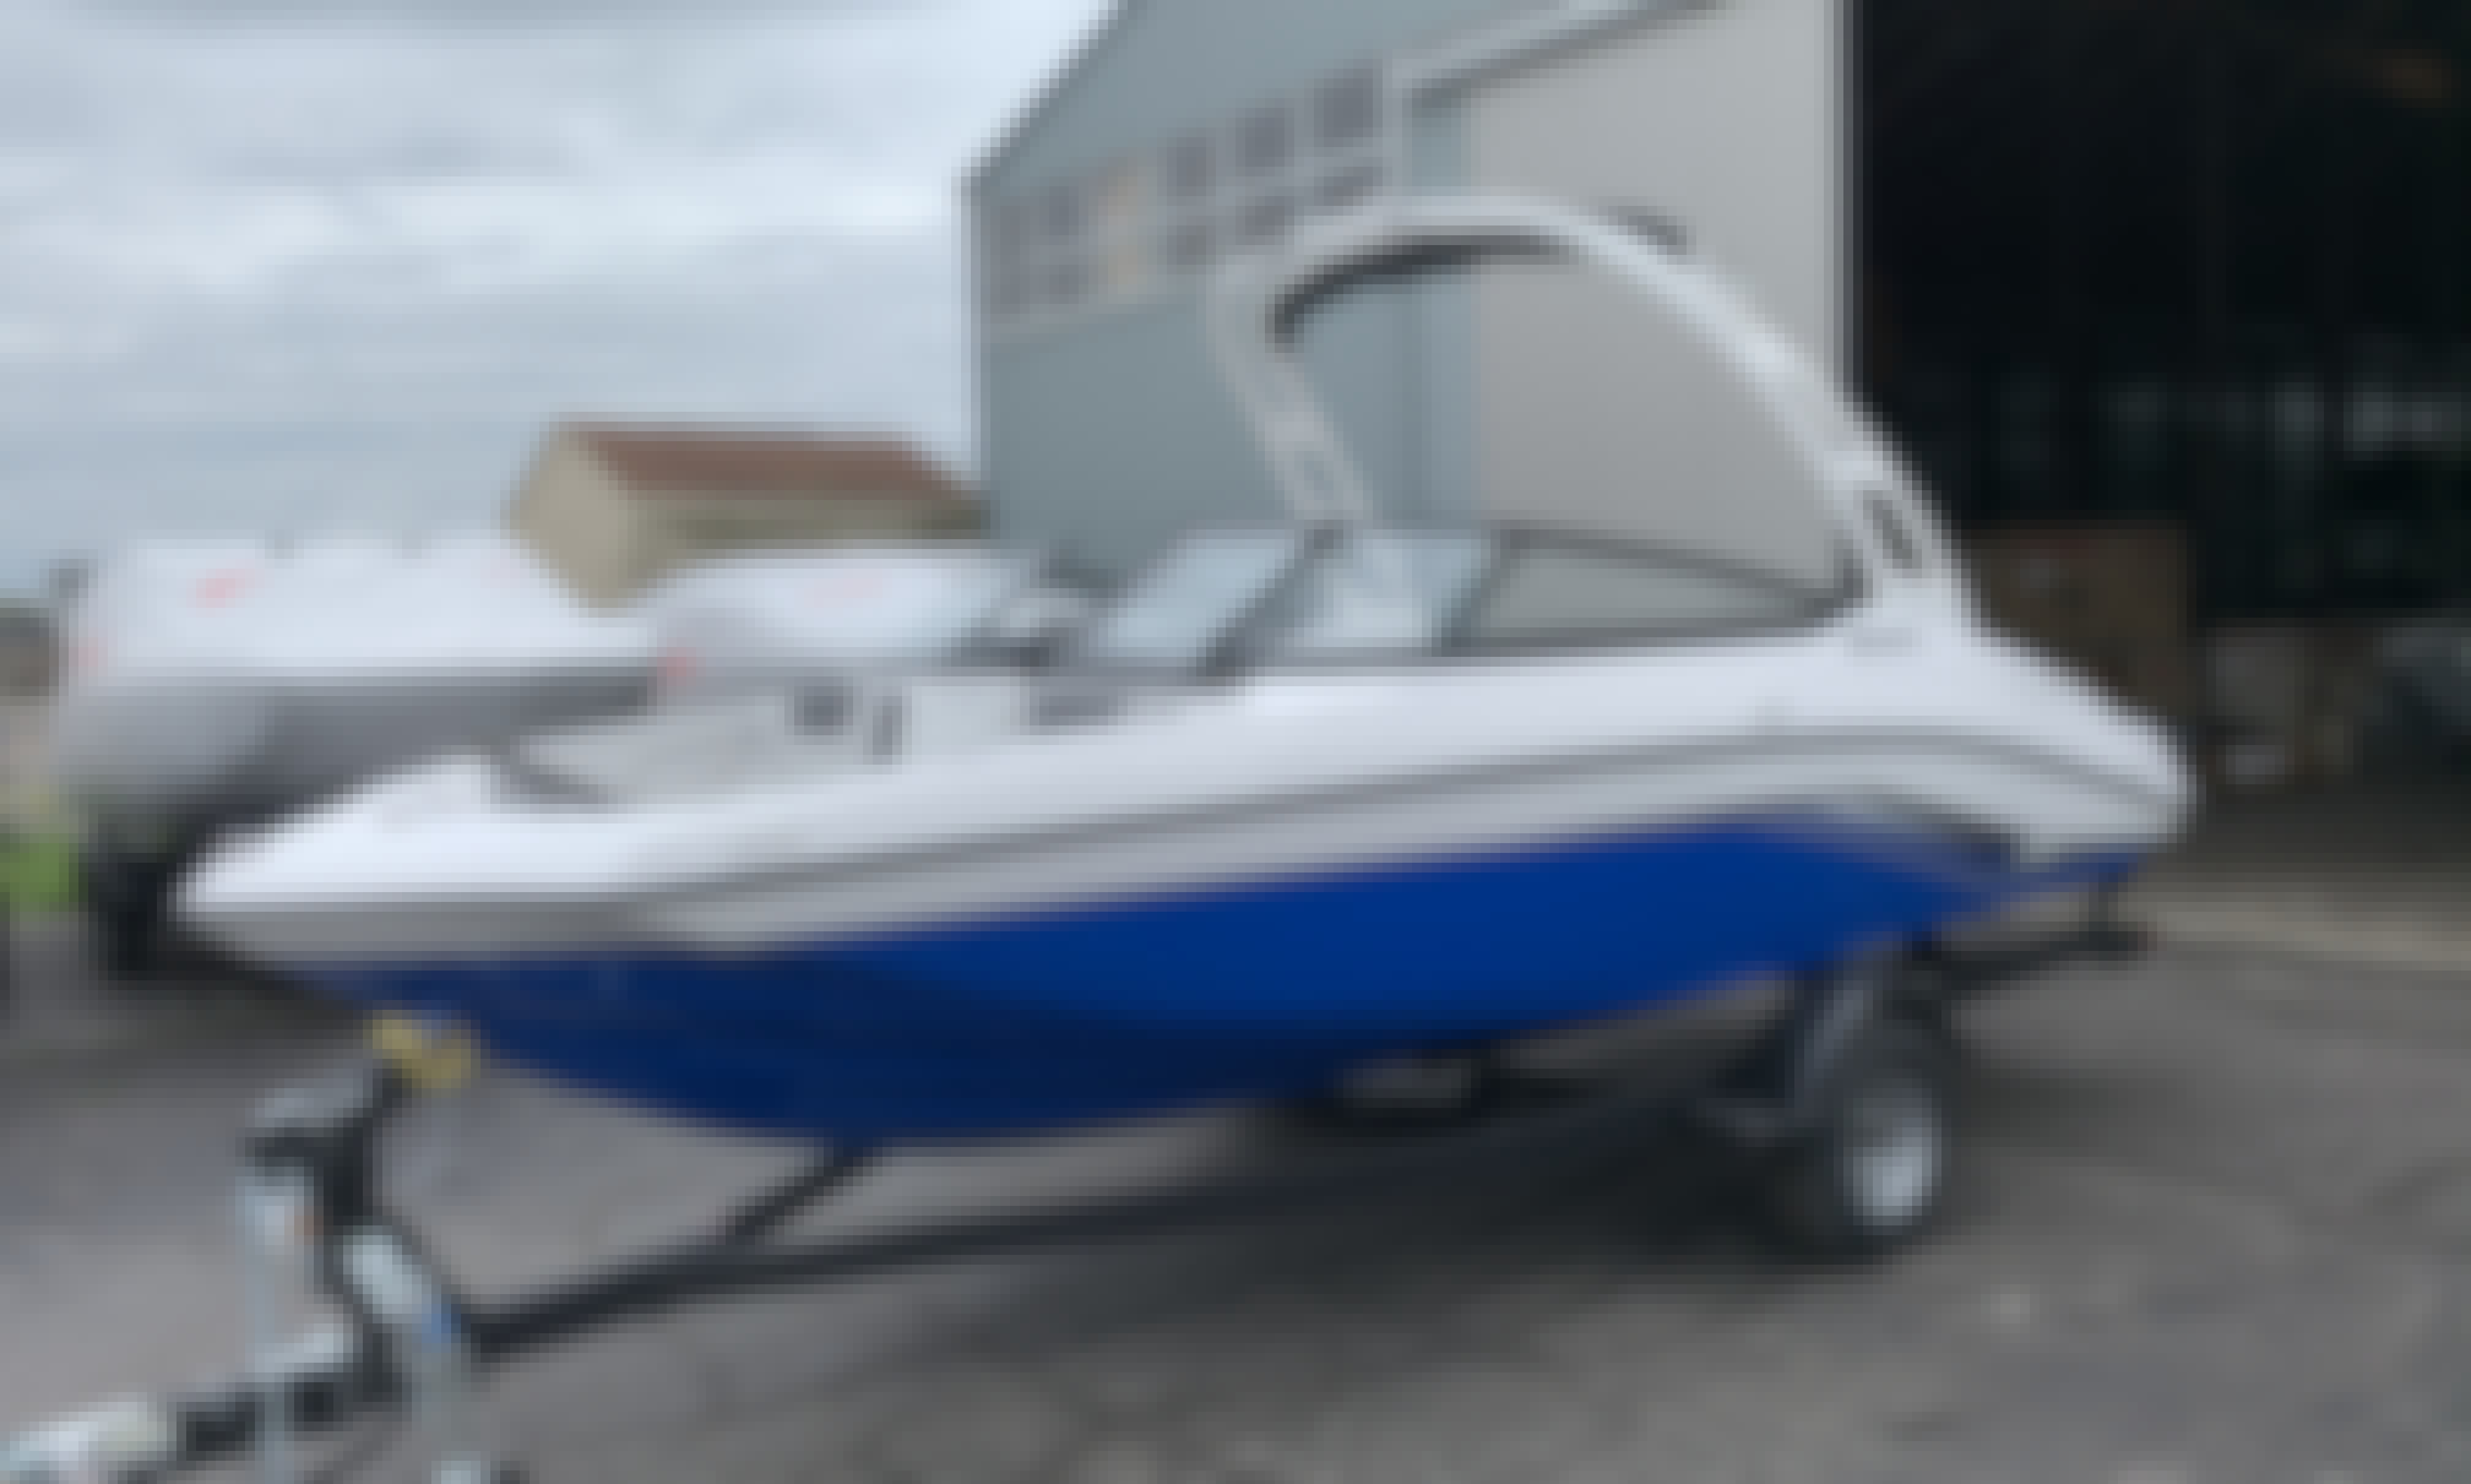 Yamaha AR190 Jetboat for 6 People in Detroit